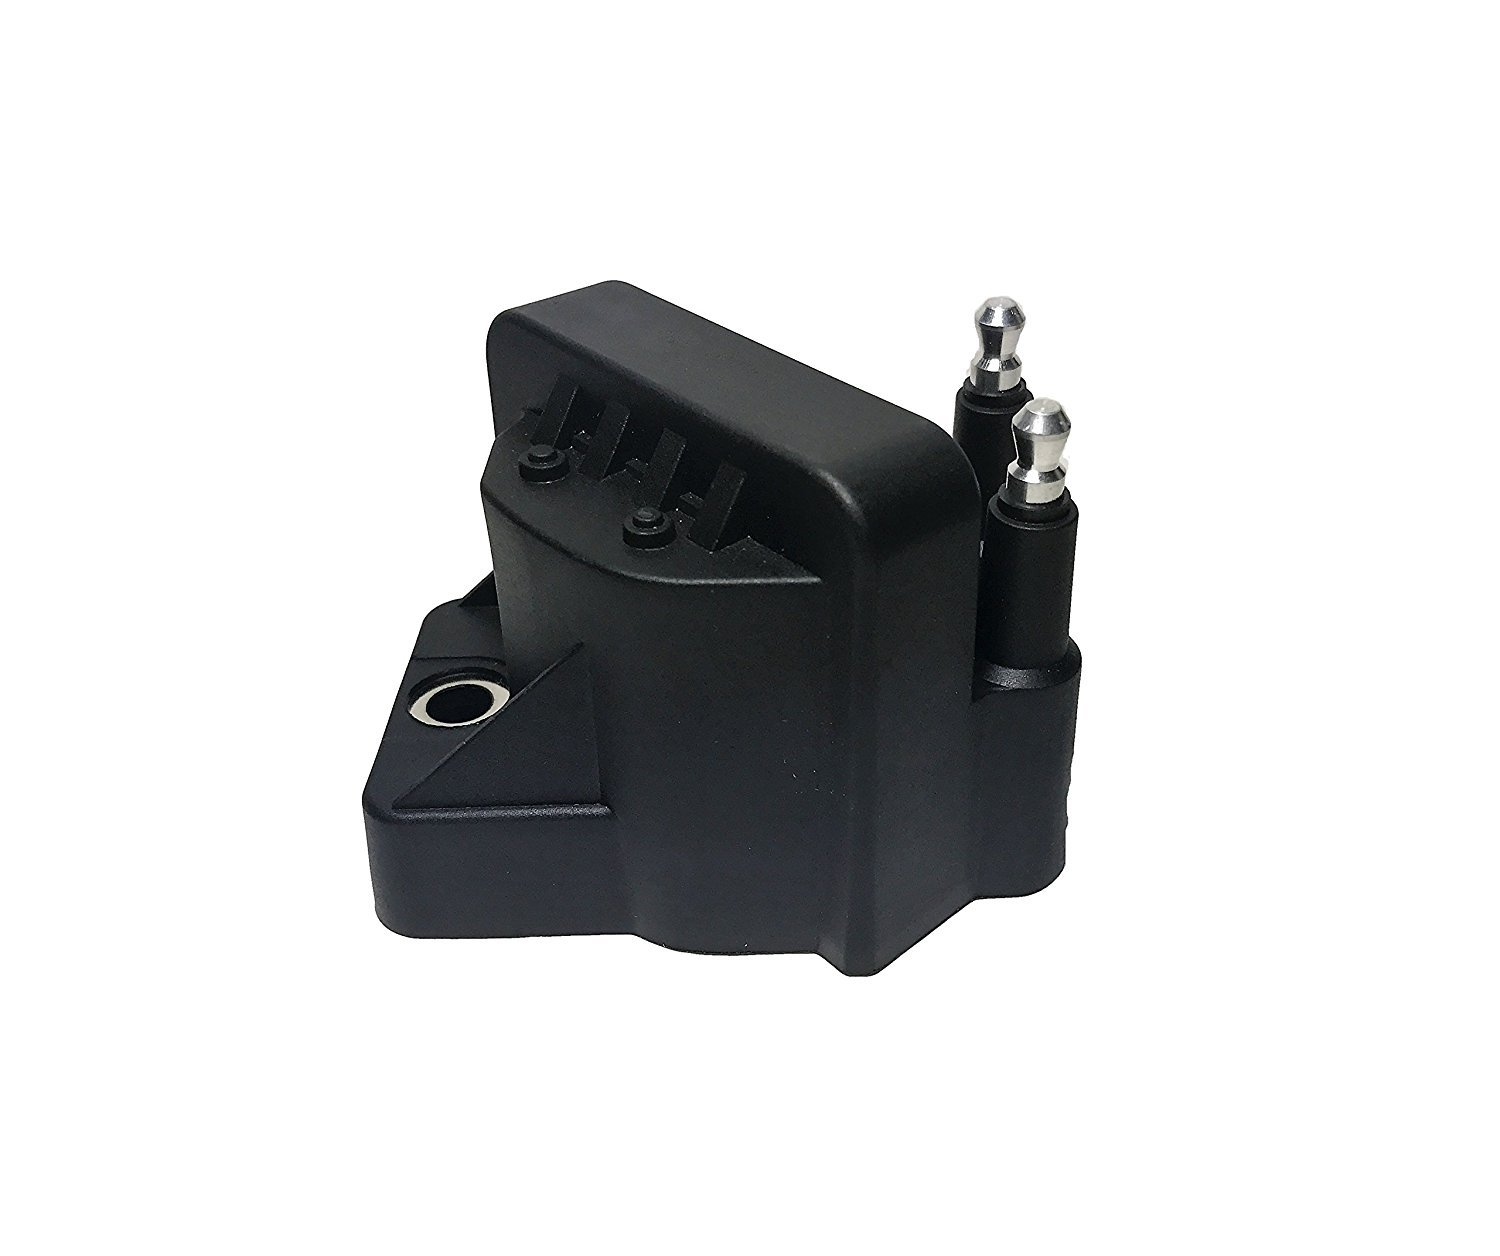 Ignition Coil Pack- Replaces GM# 10467067, 89056799 and